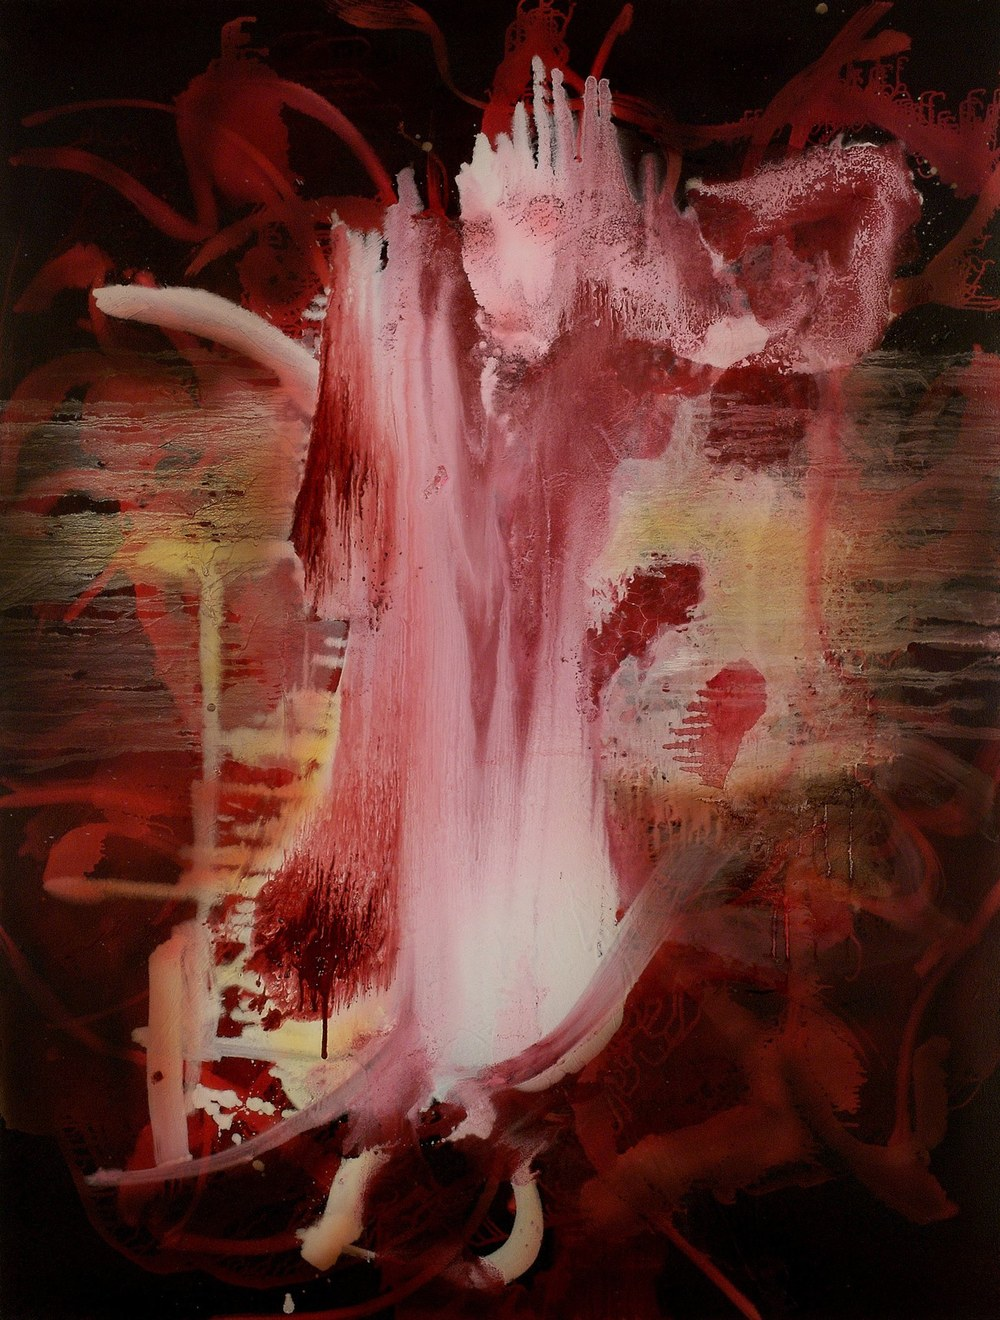 Jerry Carniglia Madonna, 2011 oil on canvas 75 x 57 inches